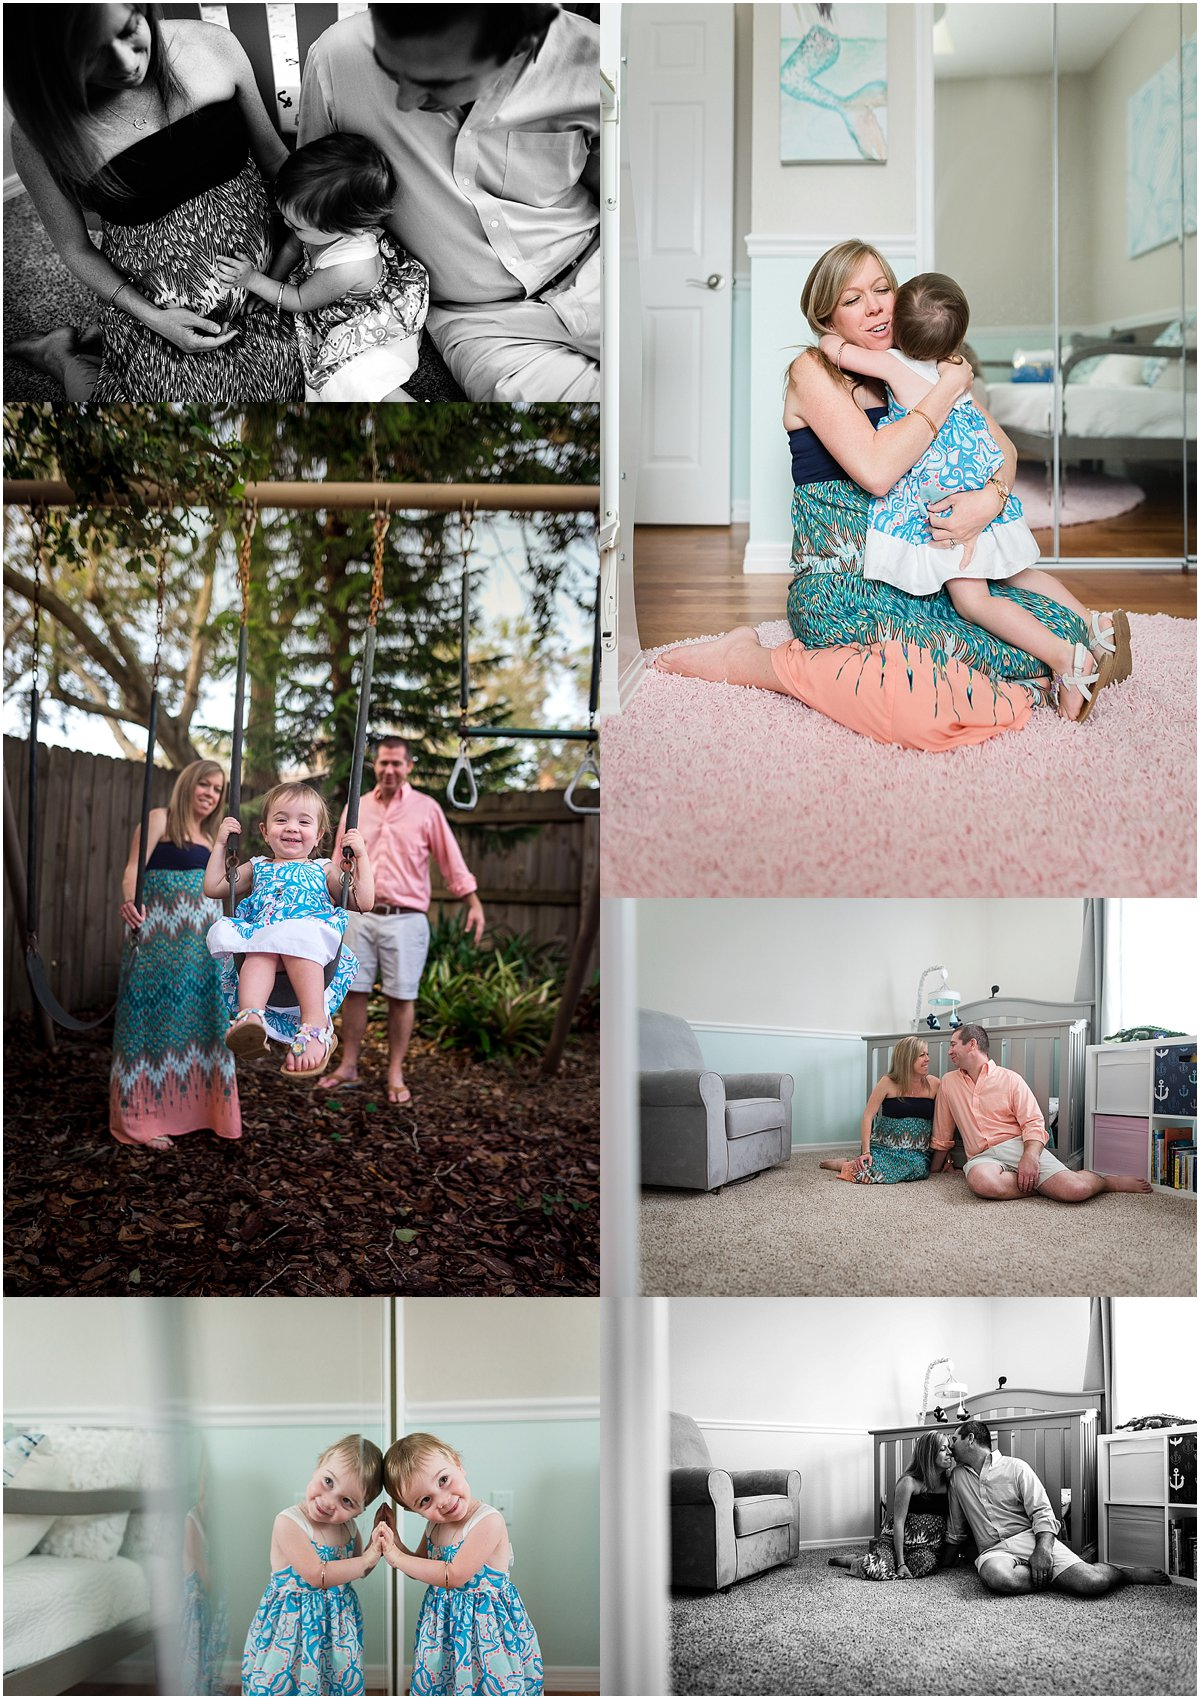 Orlando family photographer | Maternity in-home photo shoot